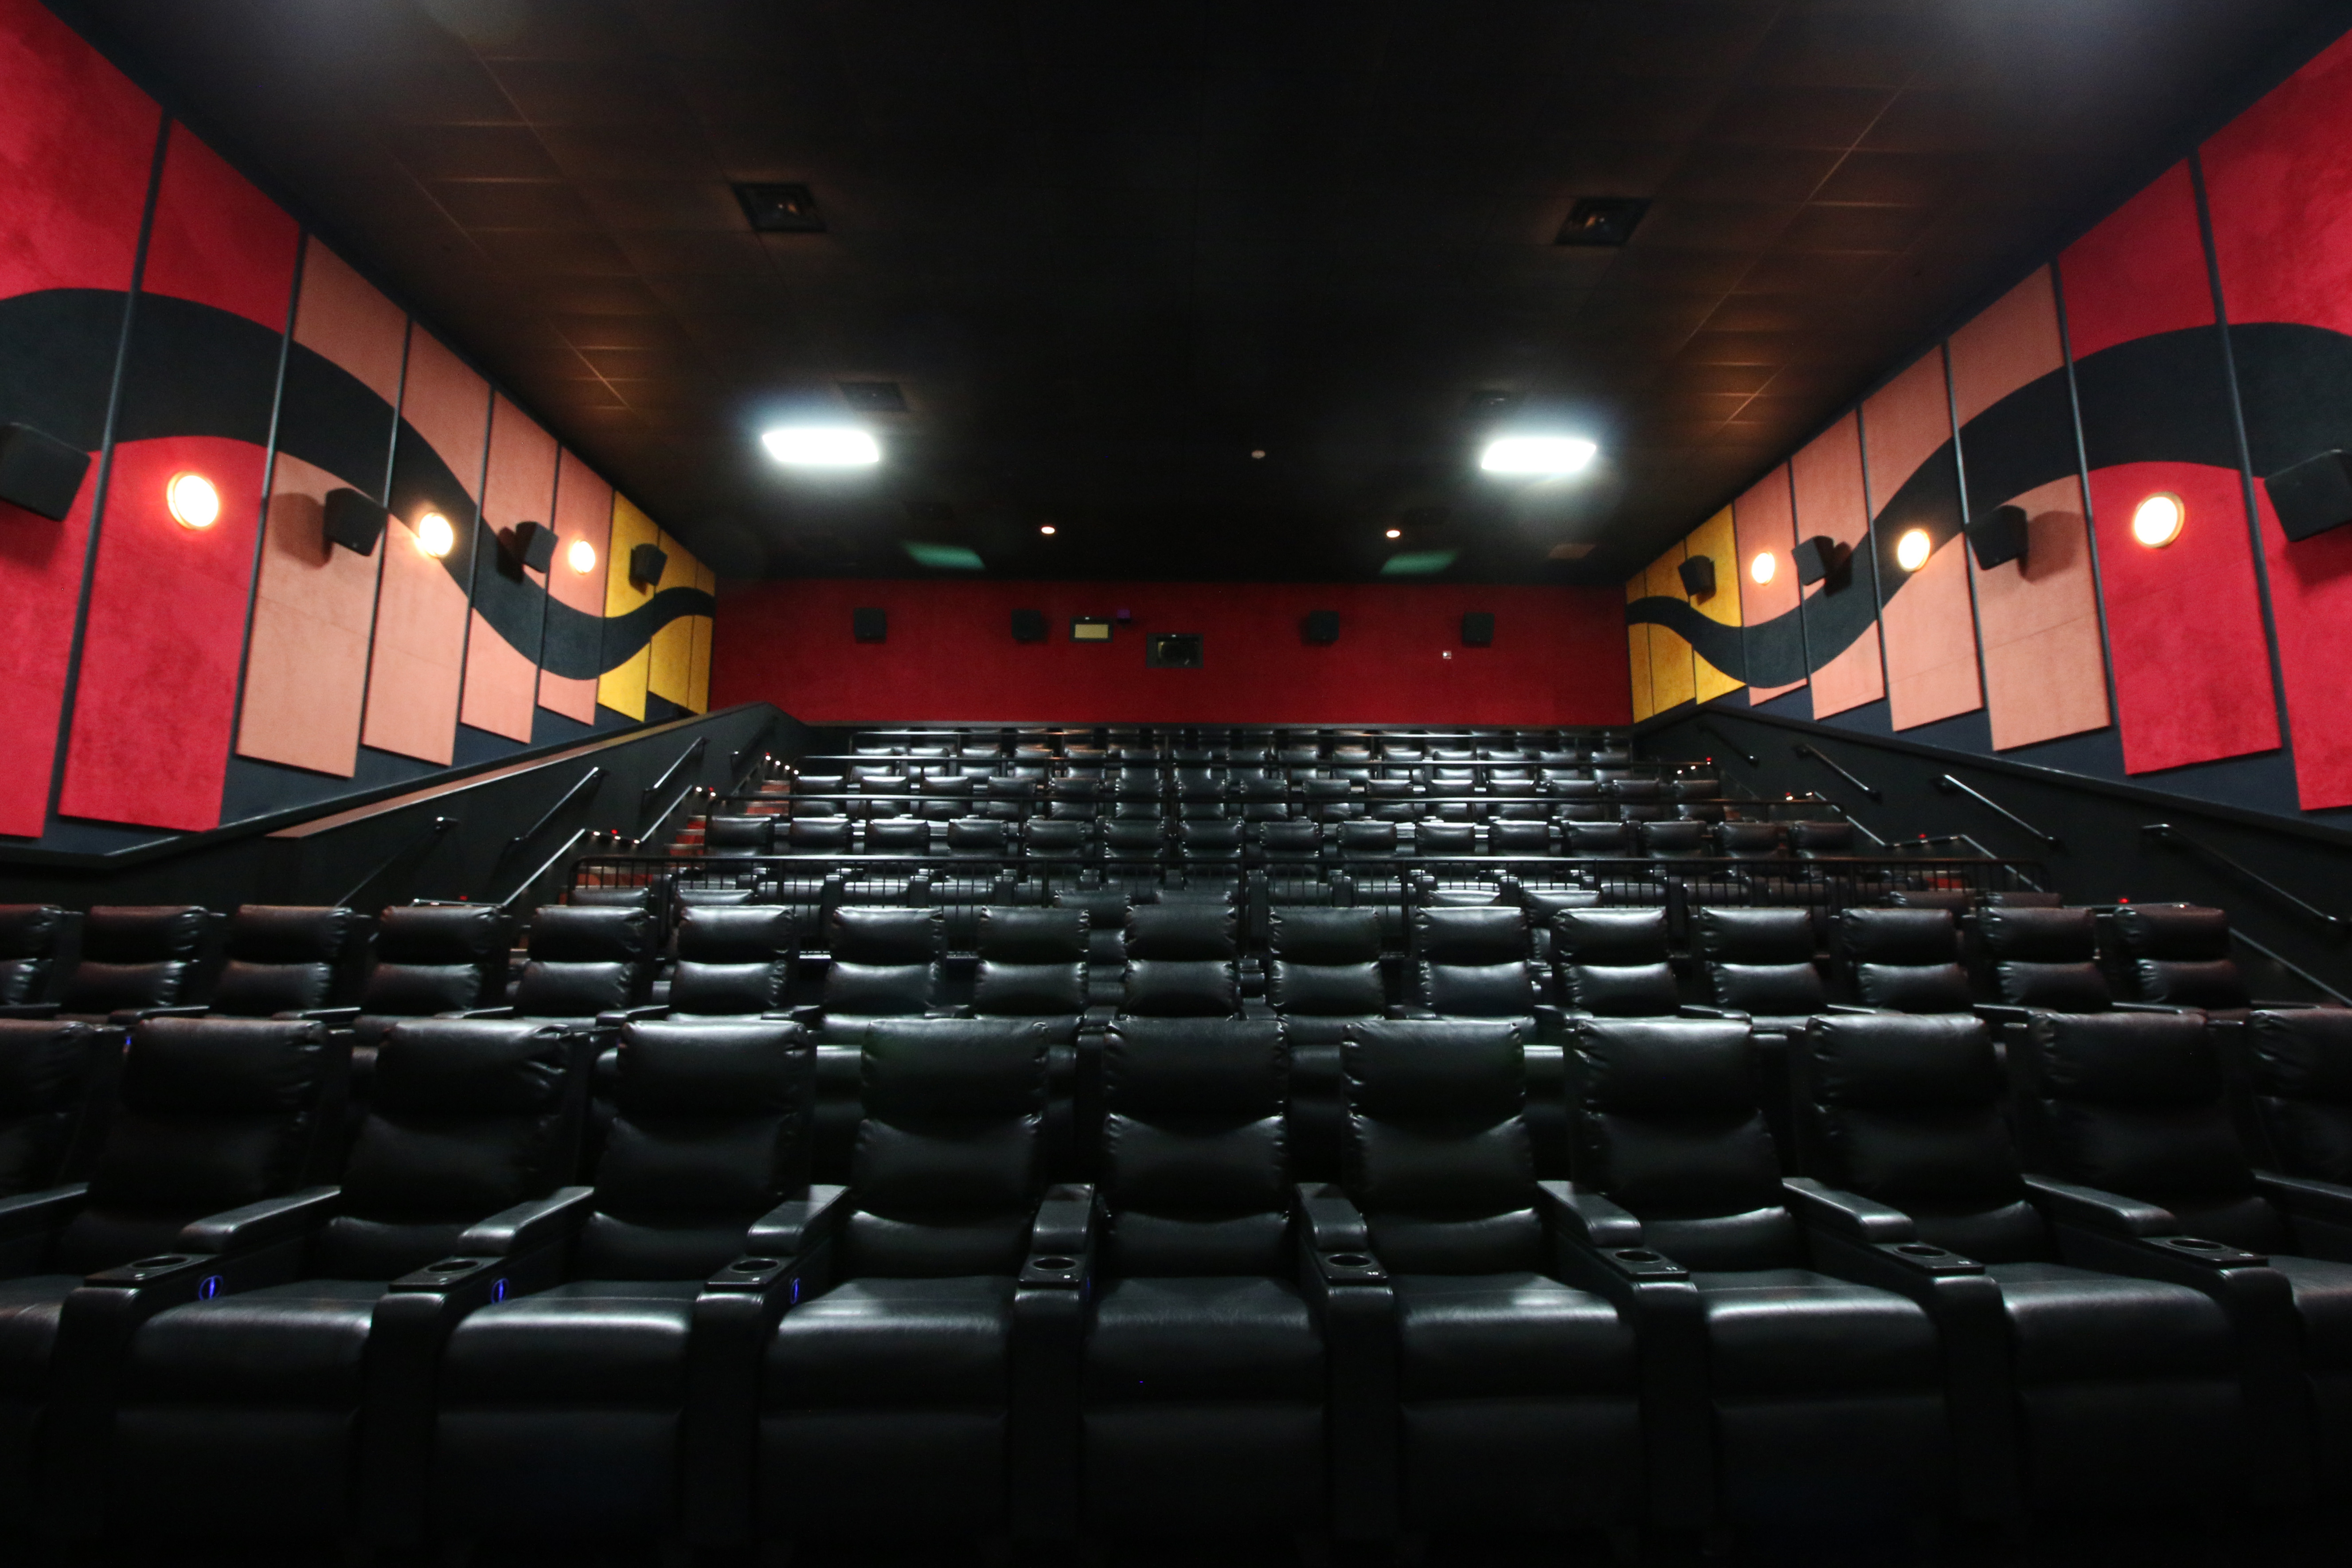 Movie times, buy movie tickets online, watch trailers and get directions to AMC Showplace Naperville 16 in Naperville, IL. Find everything you need for your local movie theater near you.